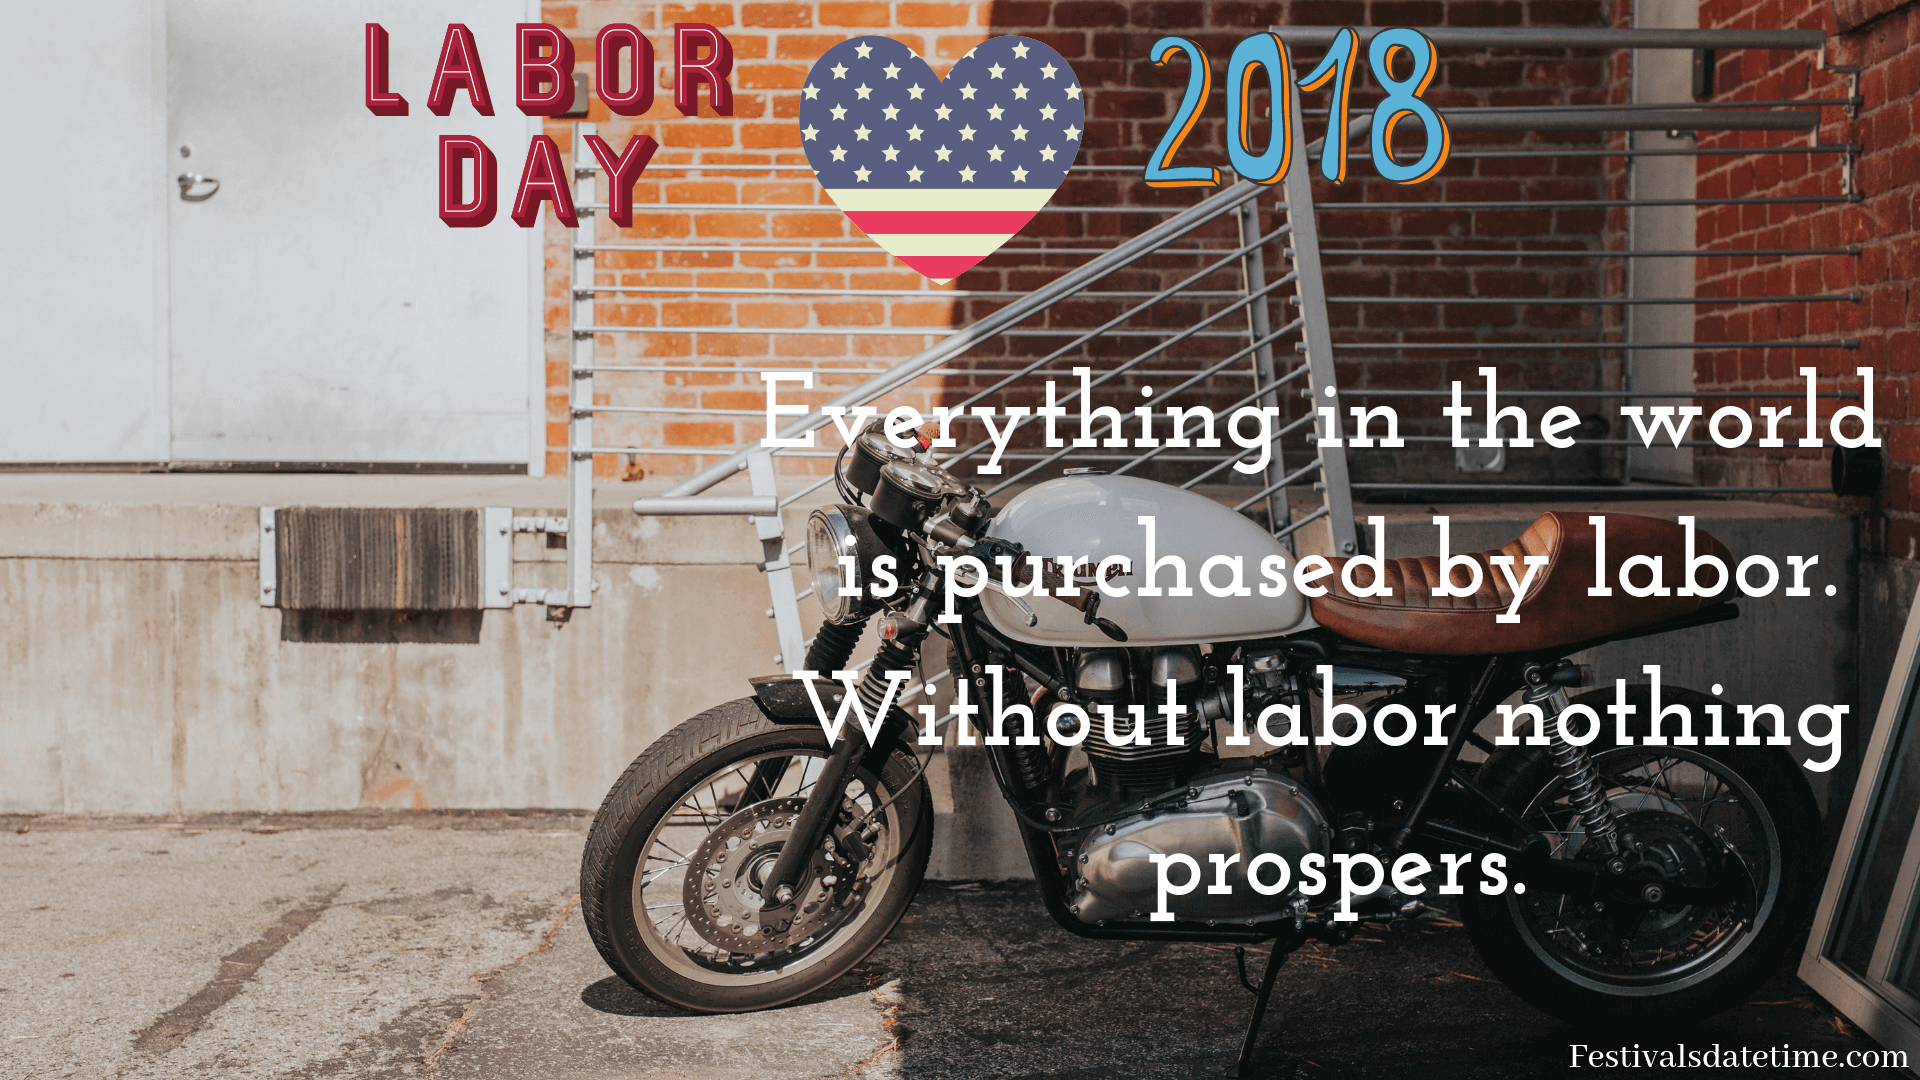 quotes for labor day holiday